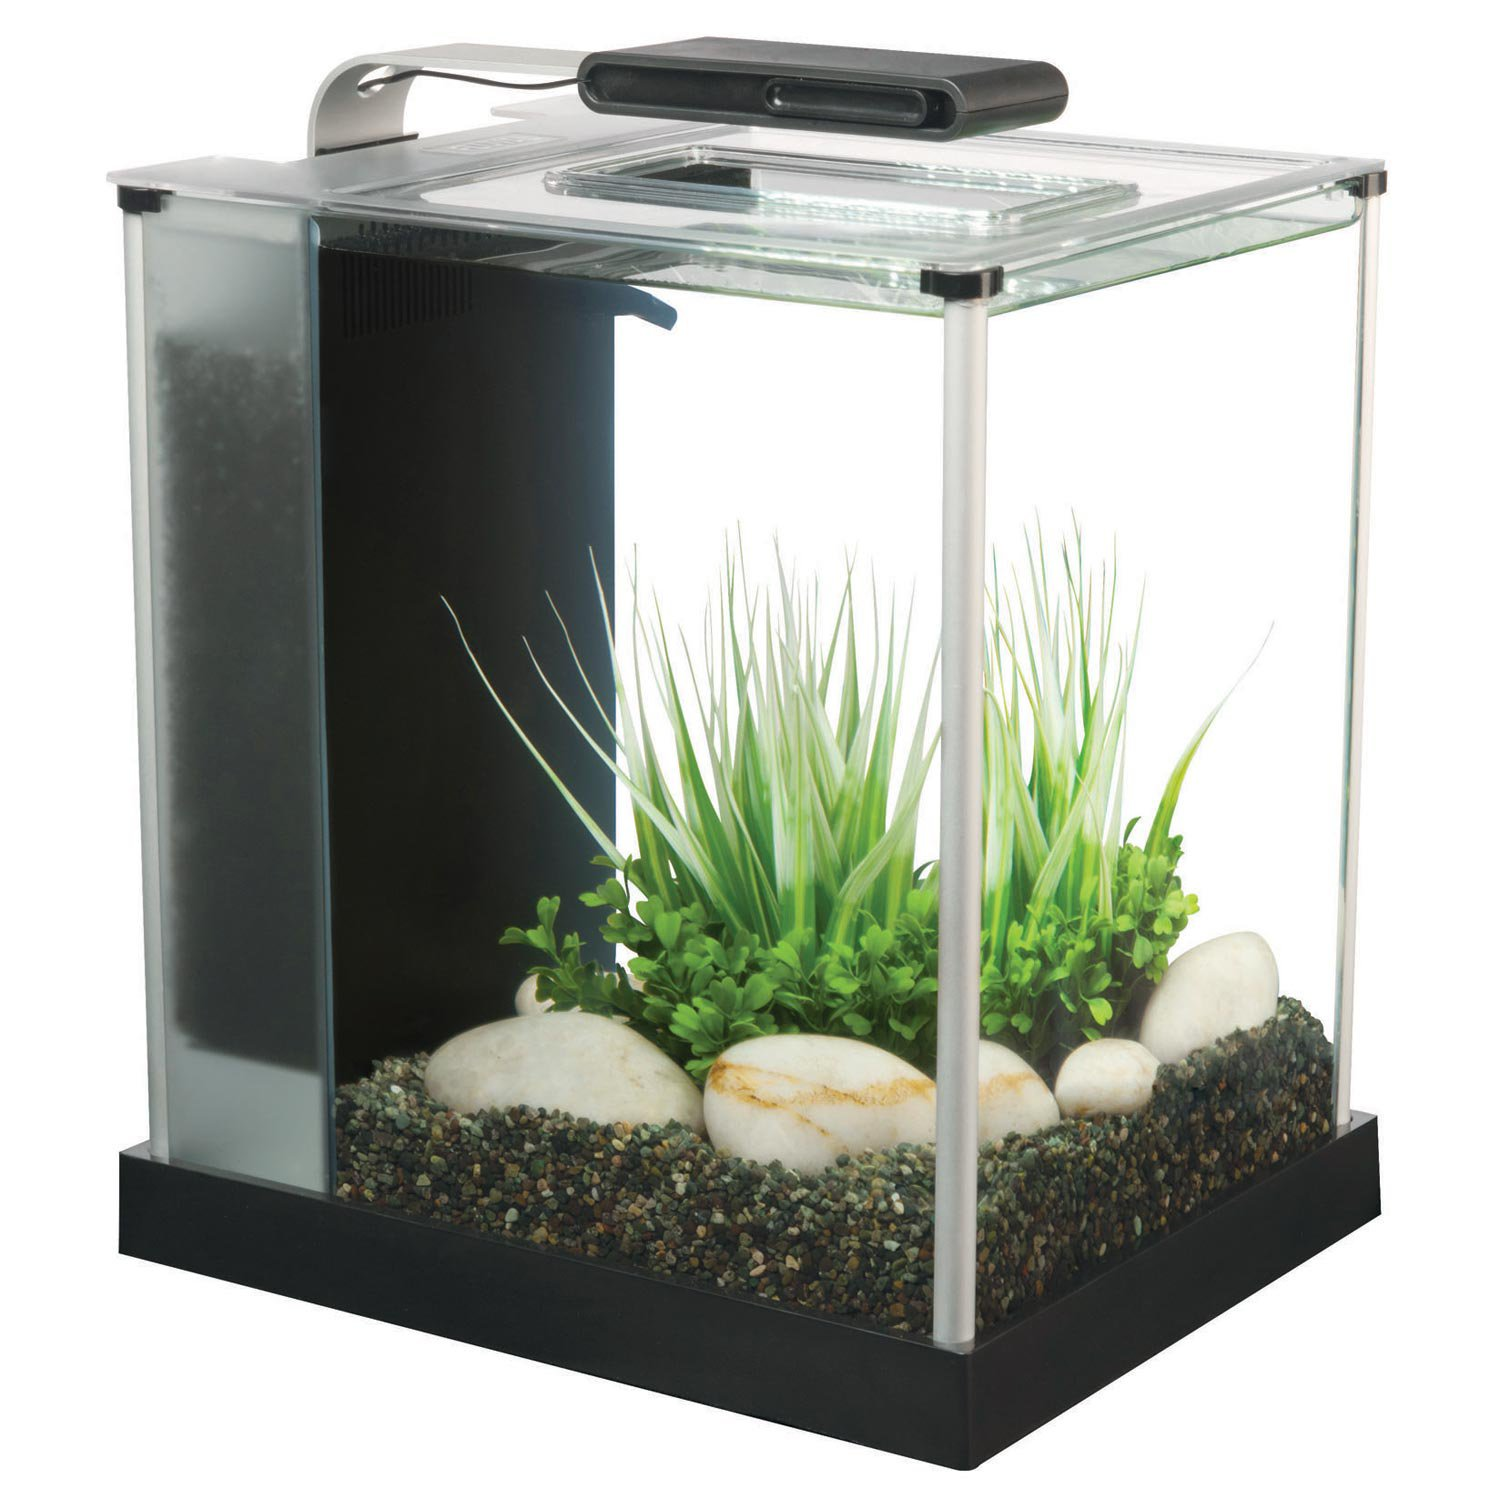 All glass aquarium fish tank - Fluval Spec Iii Aquarium Kit In Black